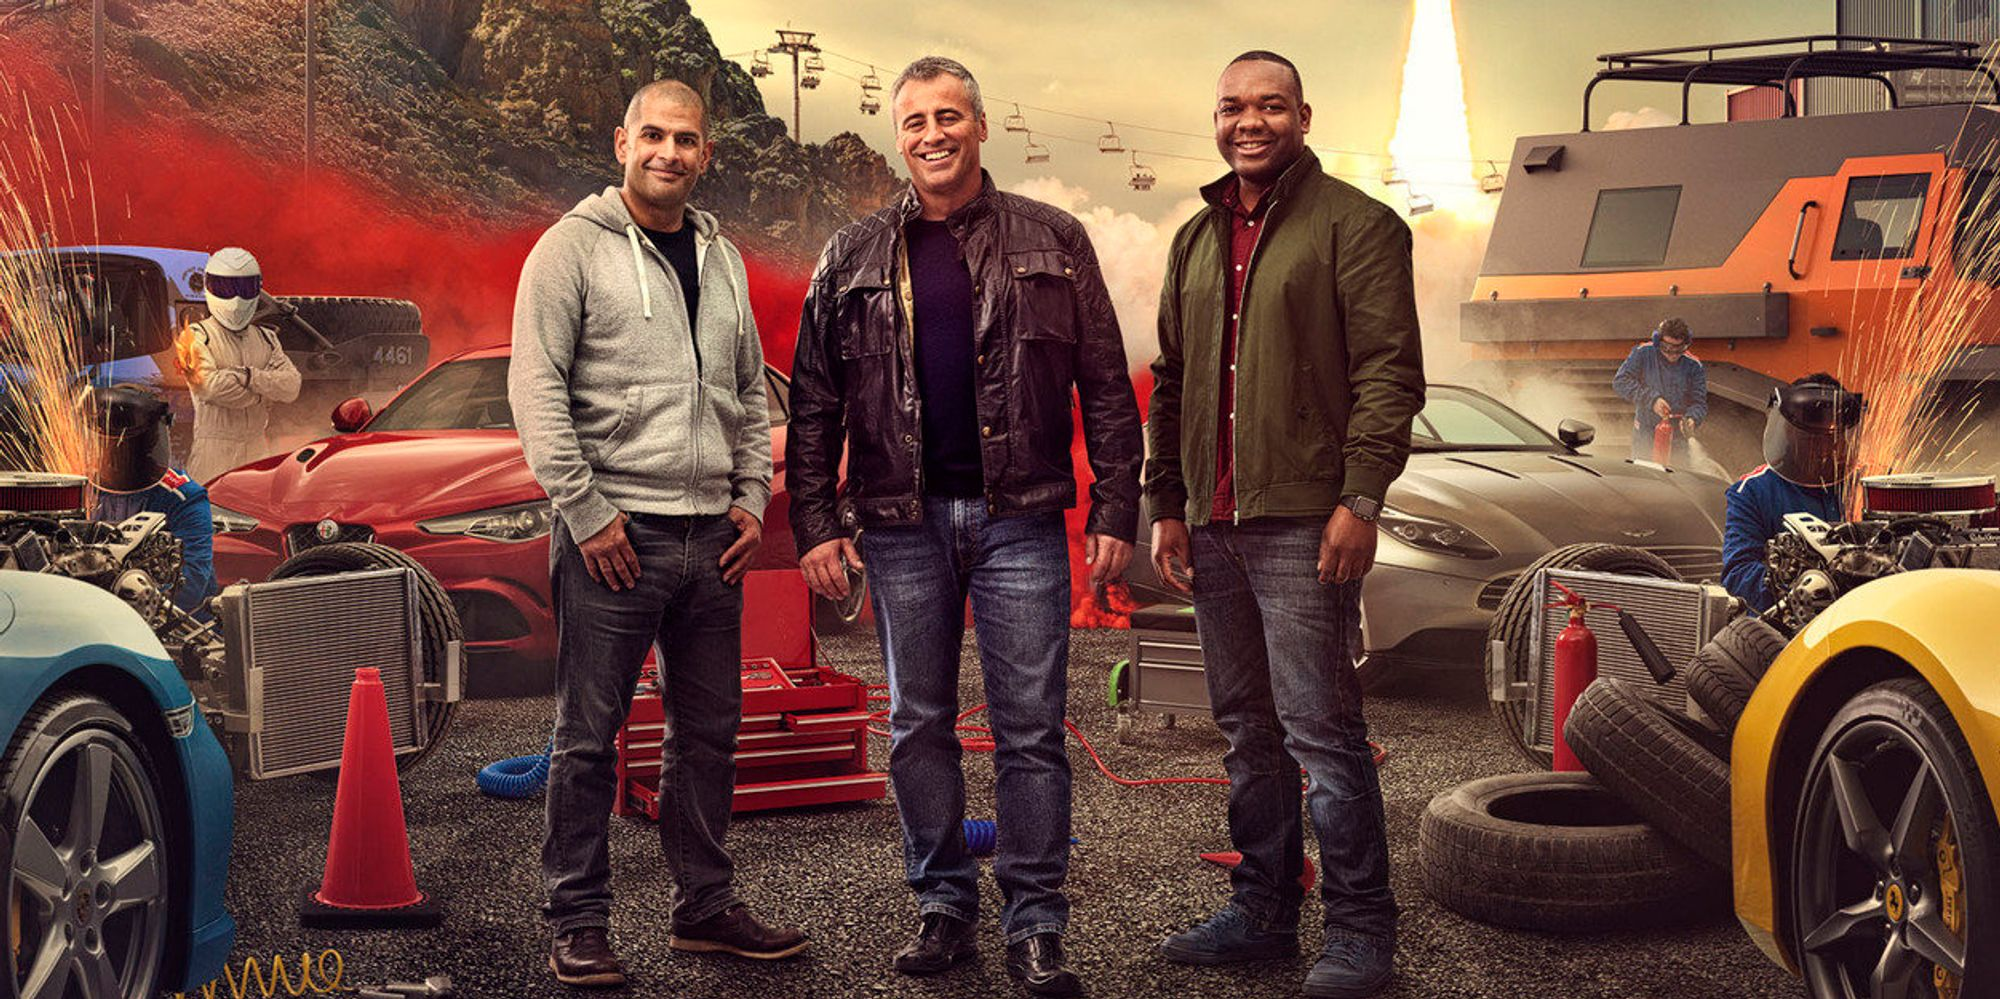 39 top gear 39 2017 start date revealed as promo shot of new presenters is unveiled huffpost uk. Black Bedroom Furniture Sets. Home Design Ideas